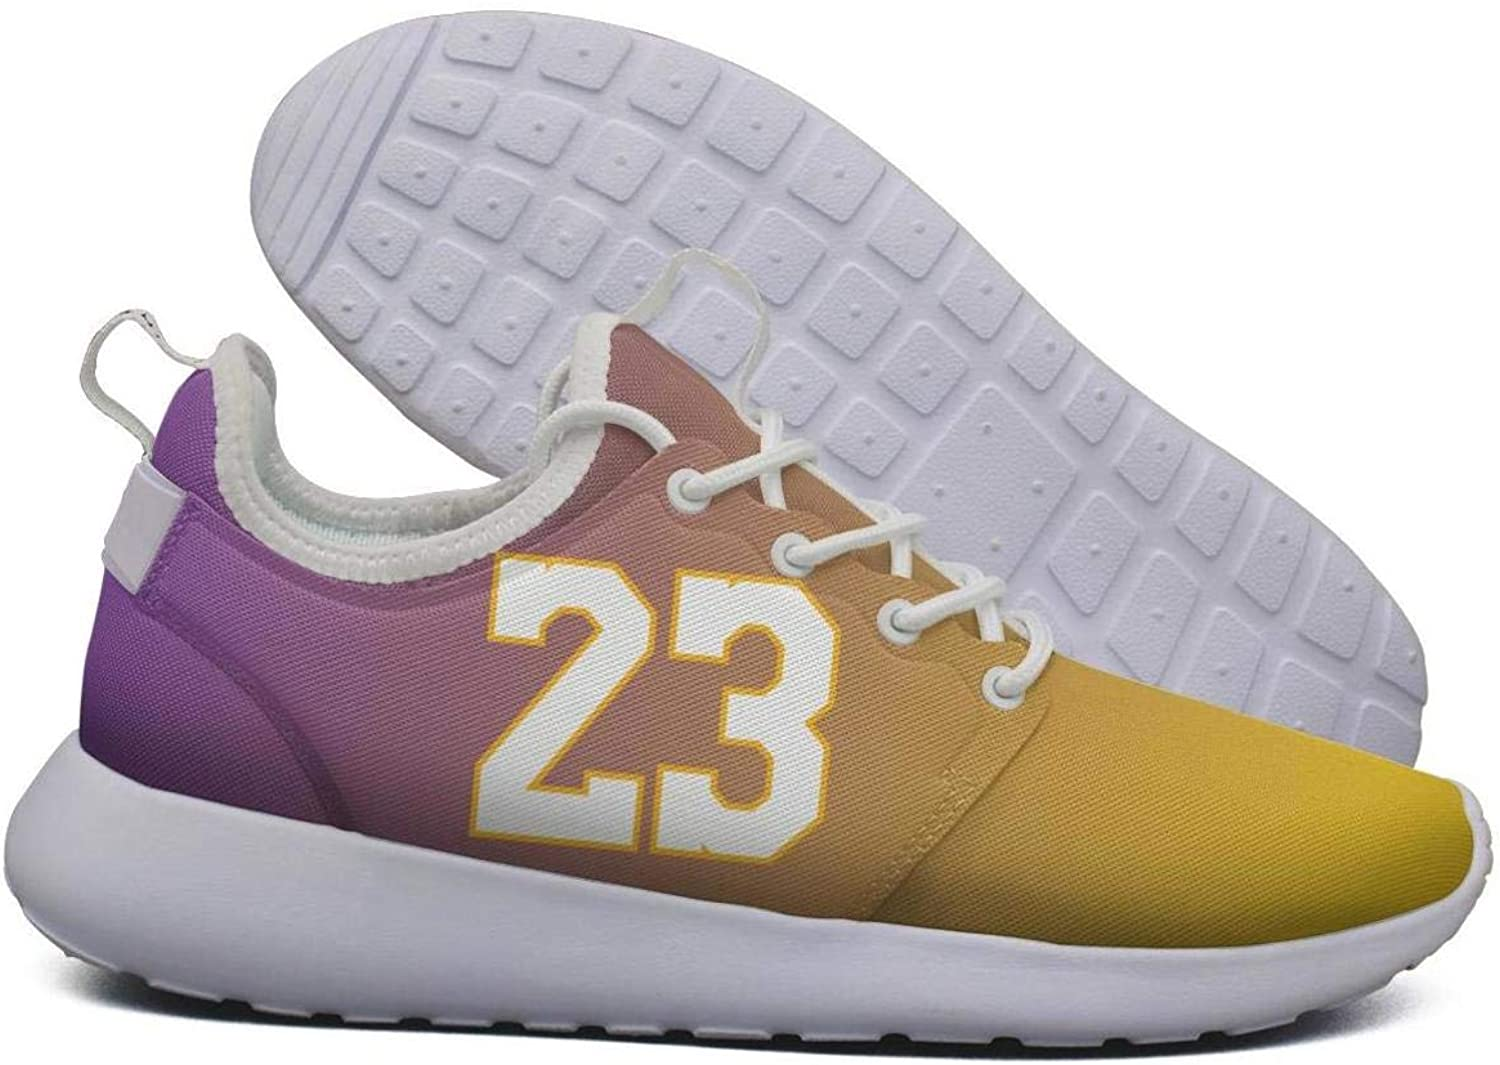 Womens Roshe Two Lightweight labron_23_White Print Running Sneakers mesh shoes